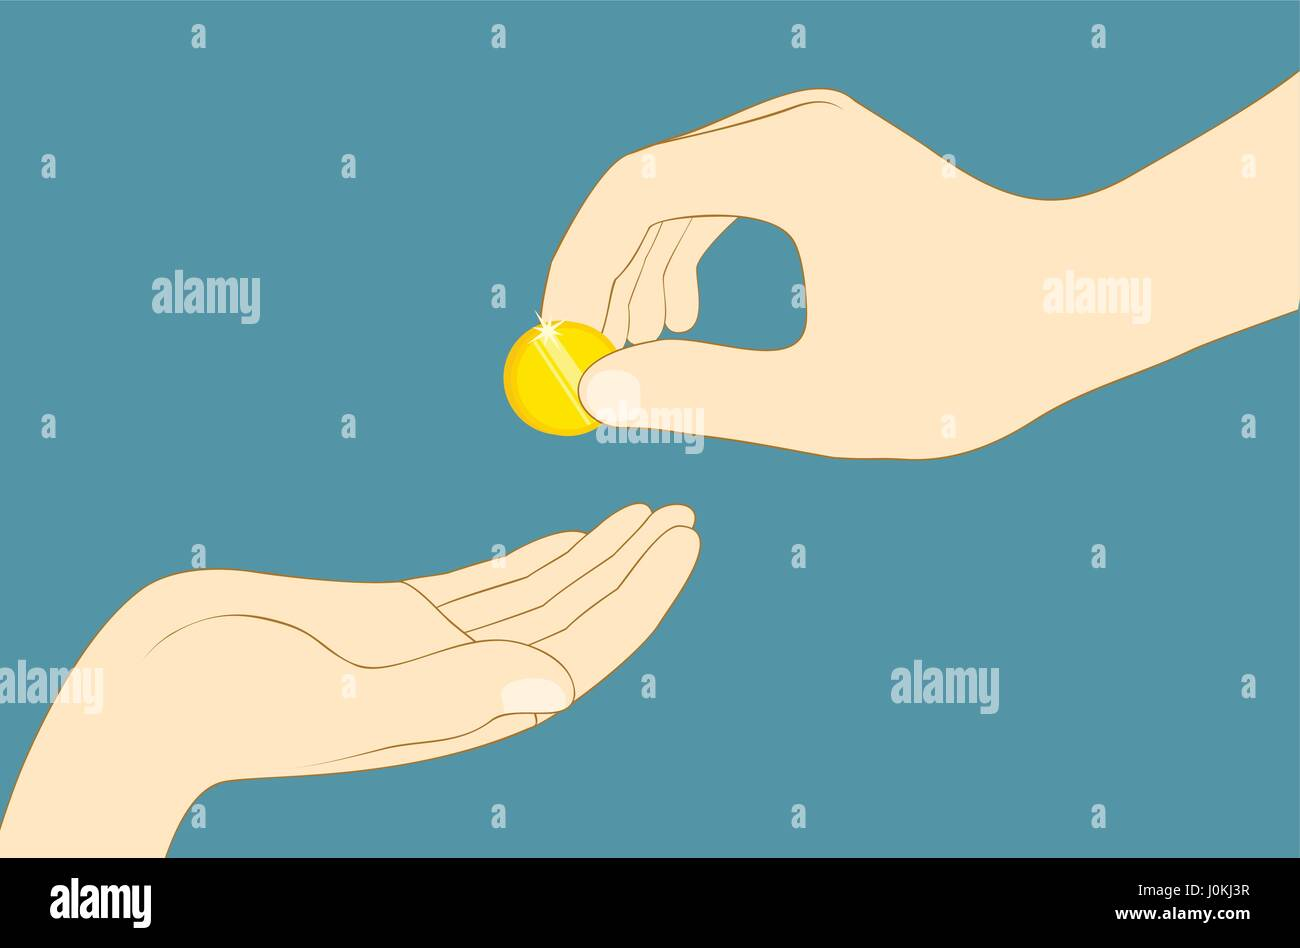 Hand giving money. Charity, donation concept. Flat vector illustration - Stock Vector